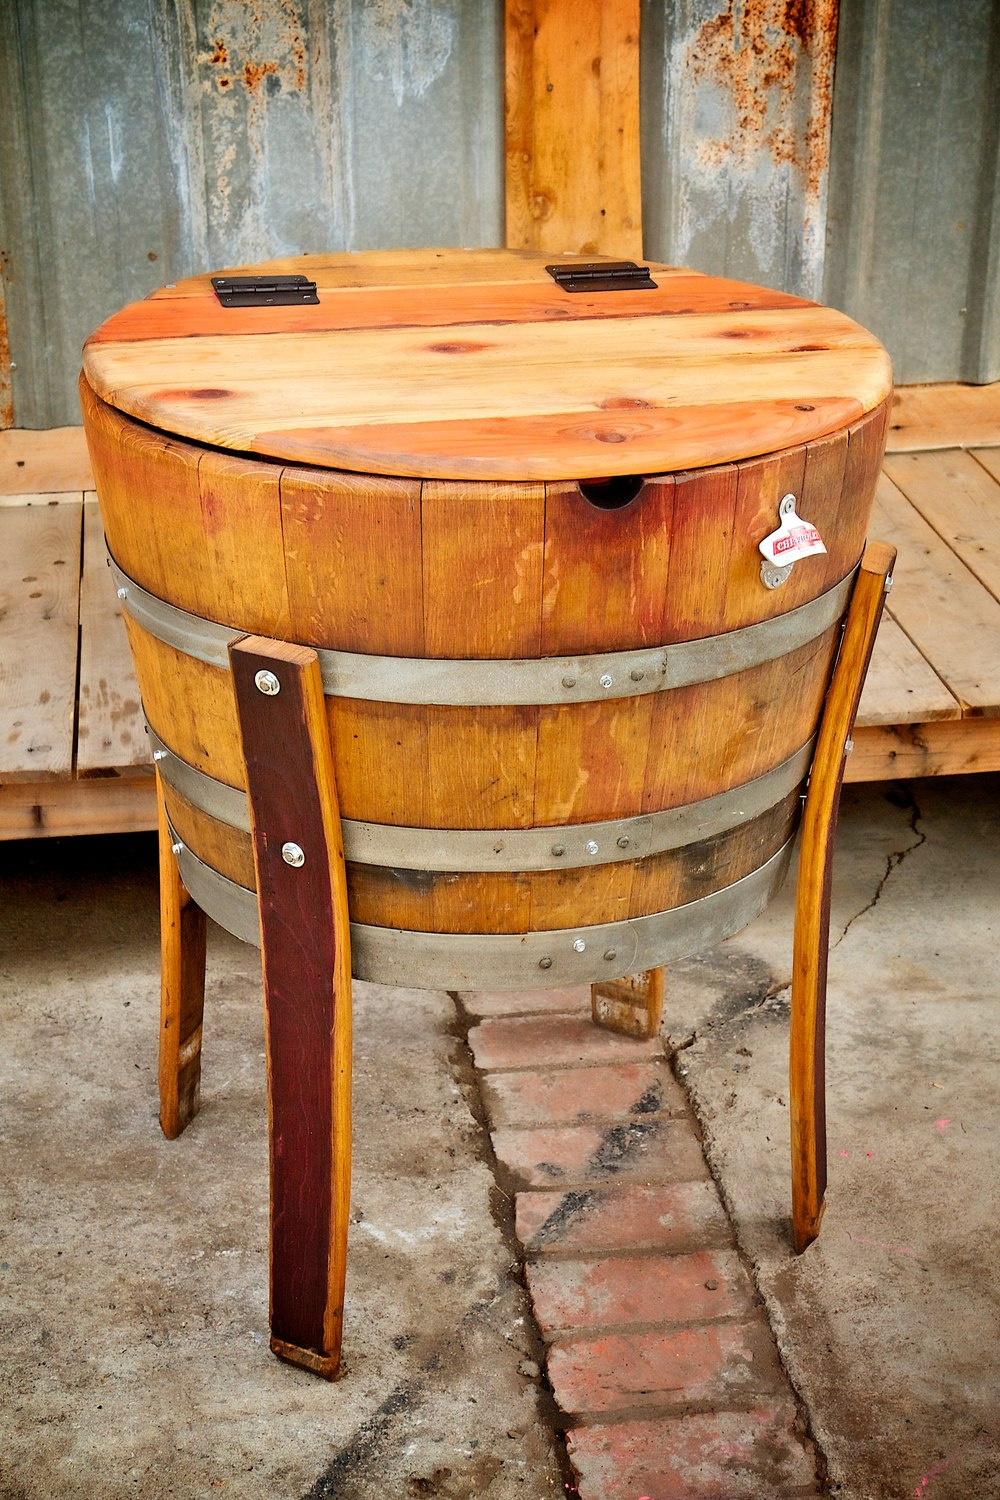 half full barrel beverage cooler king barrel